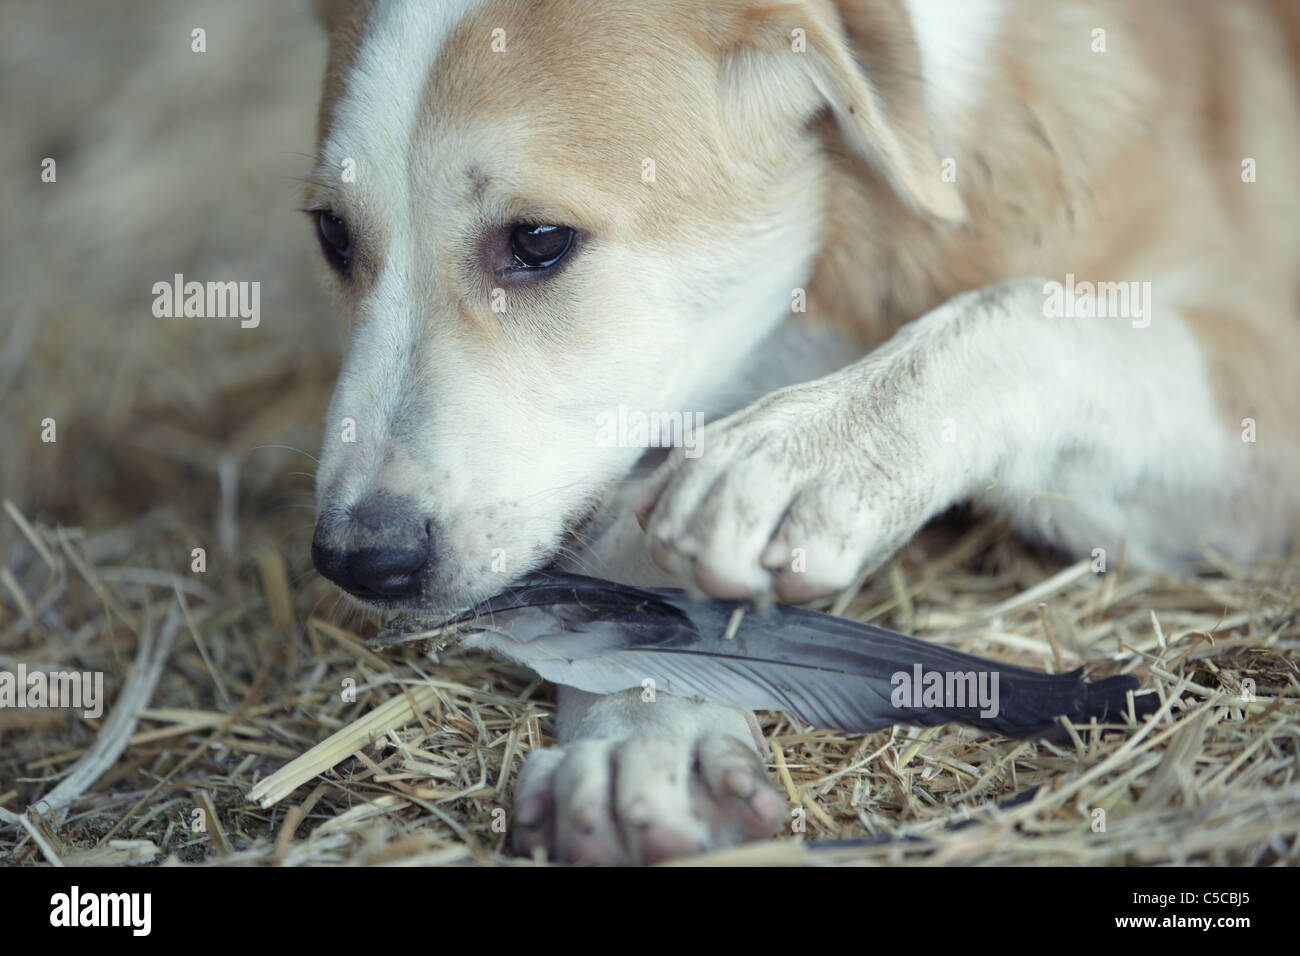 Young dog plays and eats feathers of bird - Stock Image